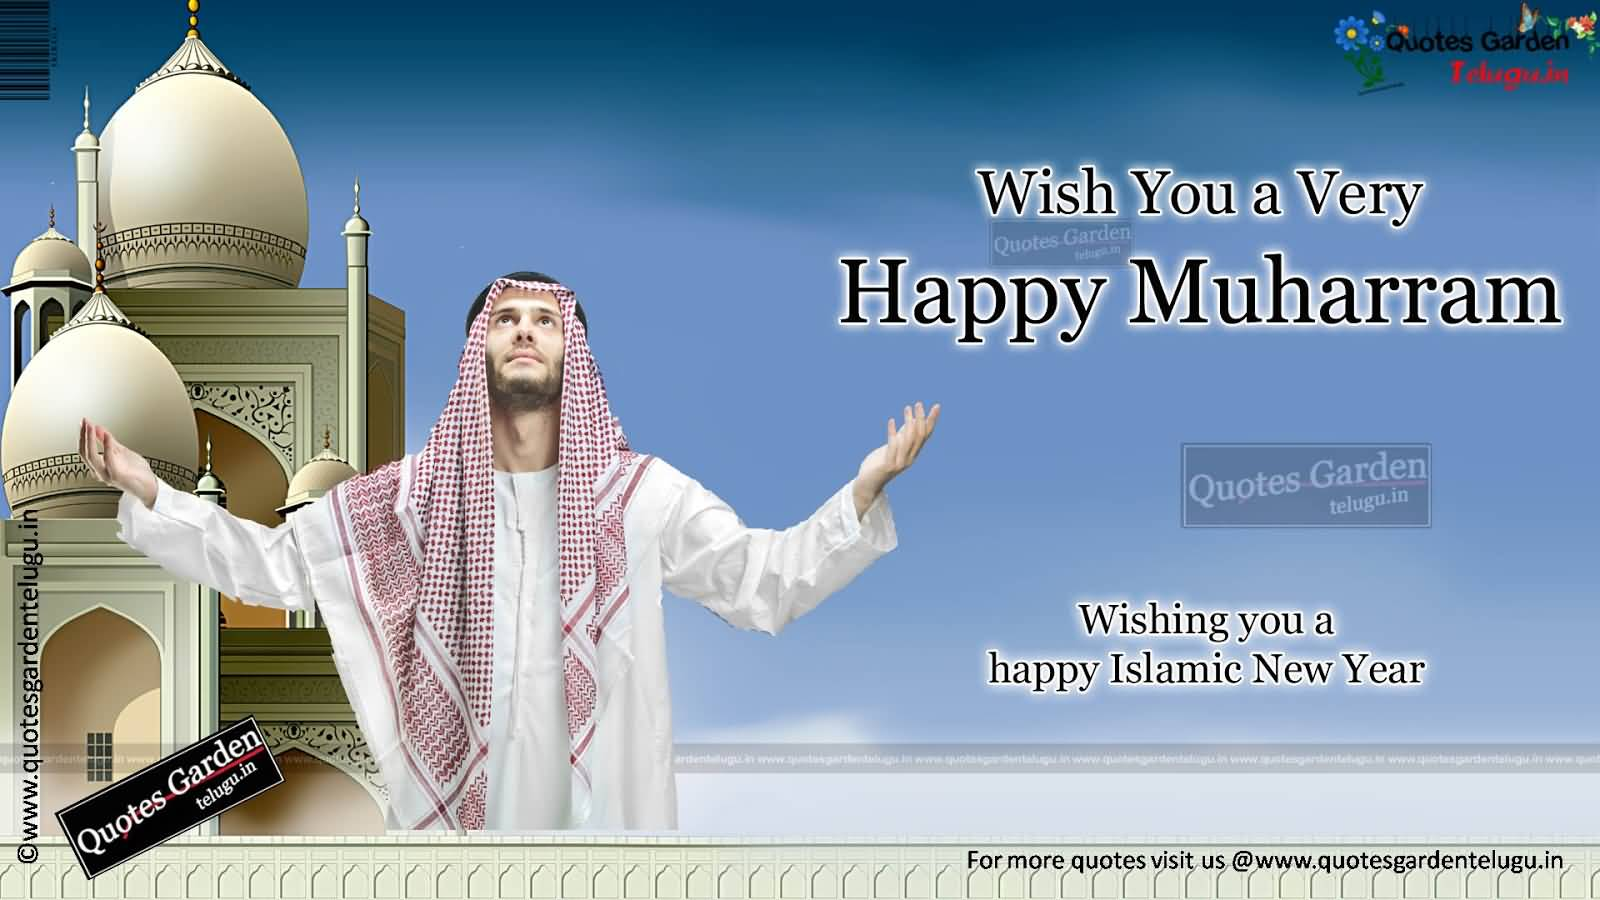 Happy Muharram 2019 Hd Wallpaper For Desktop